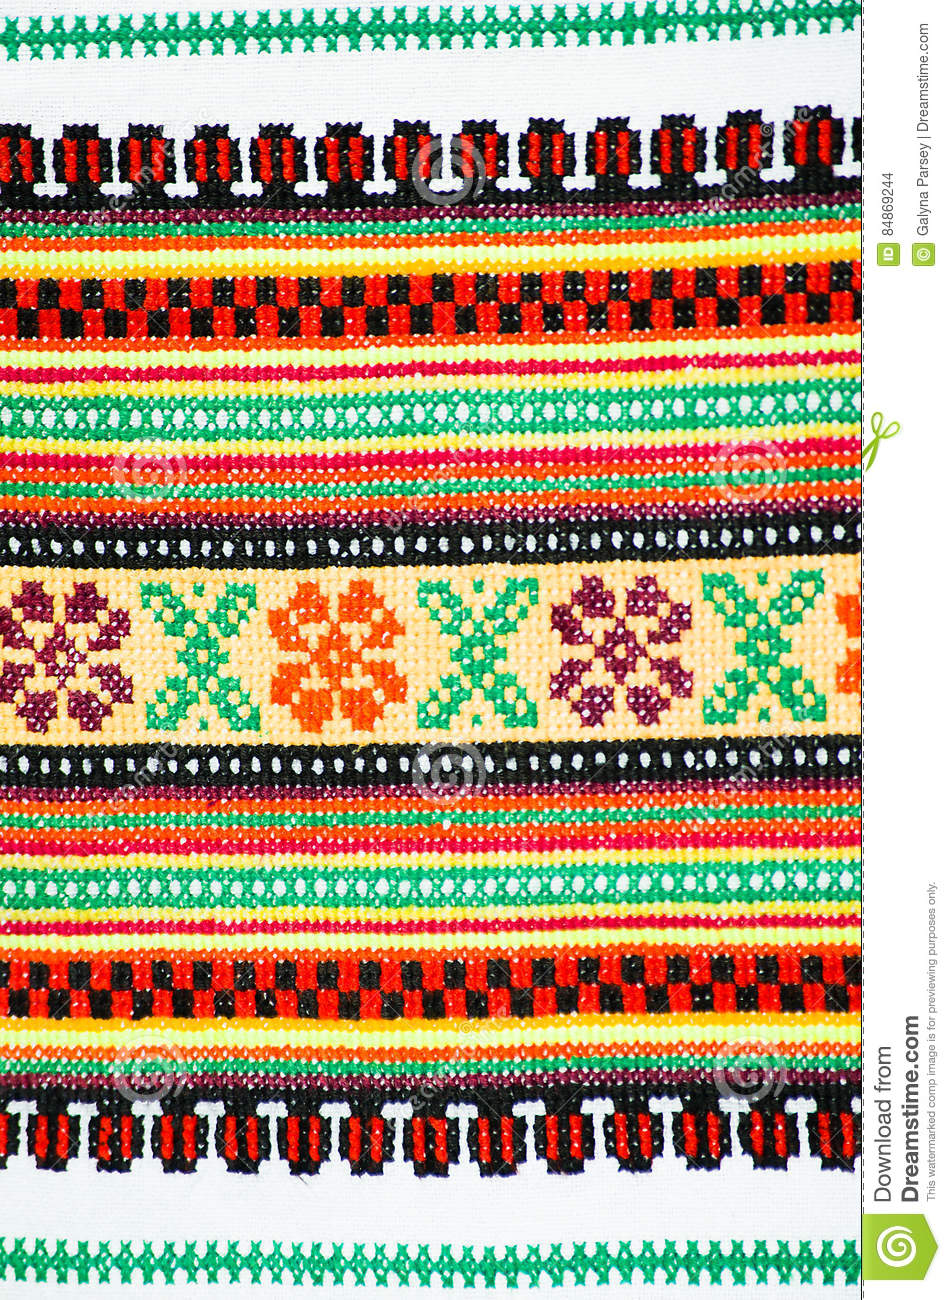 Background embroidered pattern